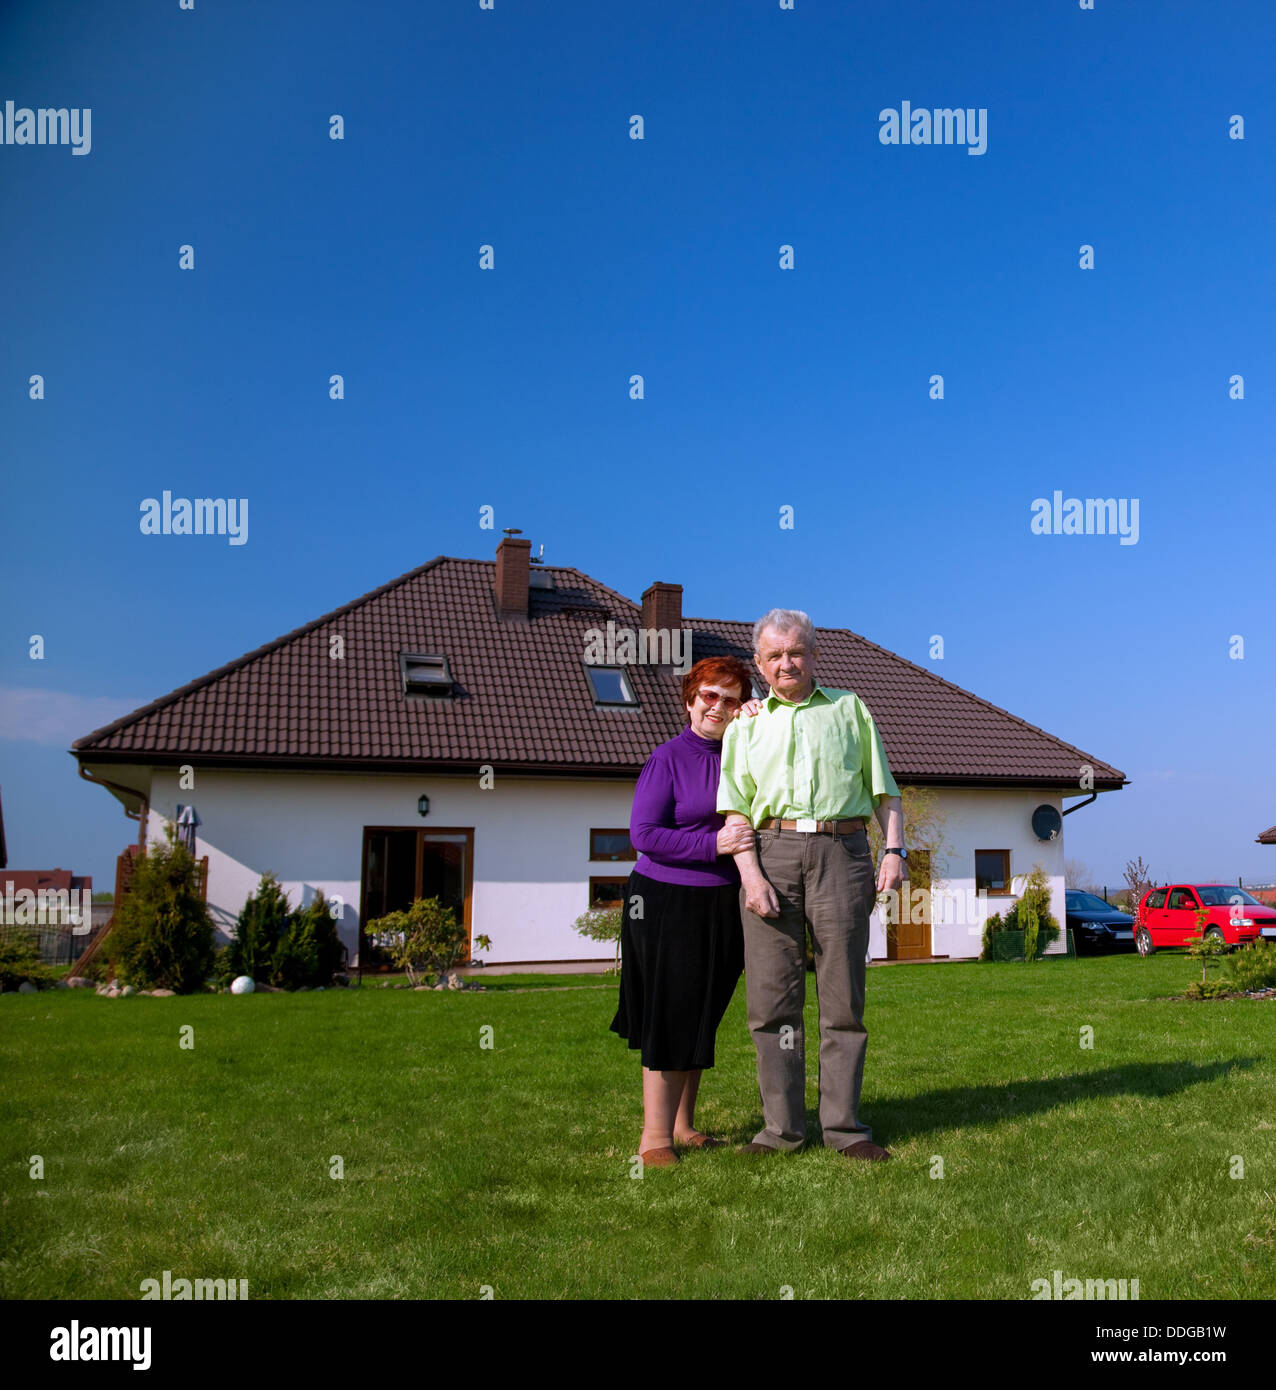 Senior smiling couple in the garden in front of their new house - Stock Image